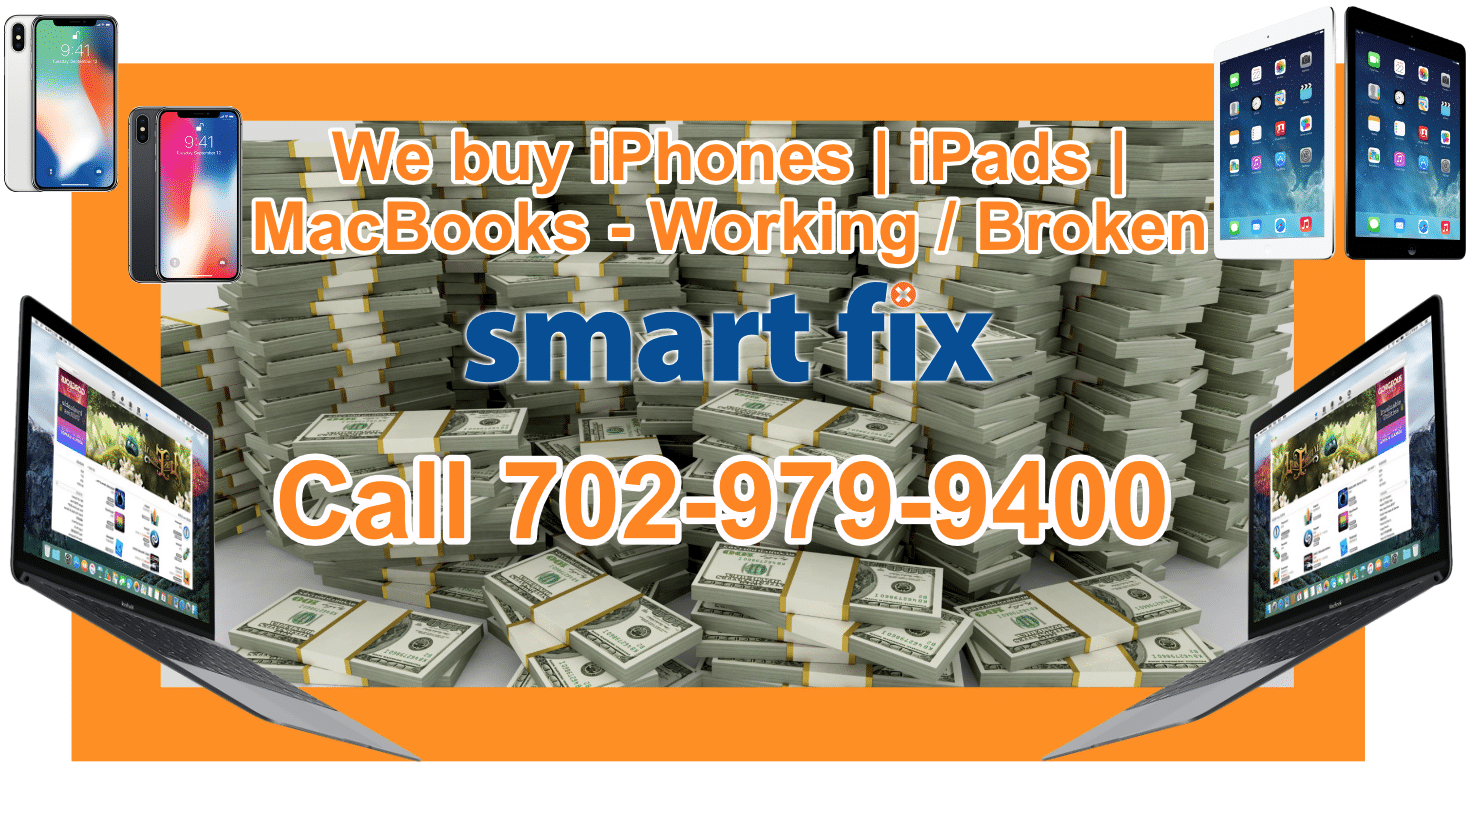 iPhone buyer las vegas